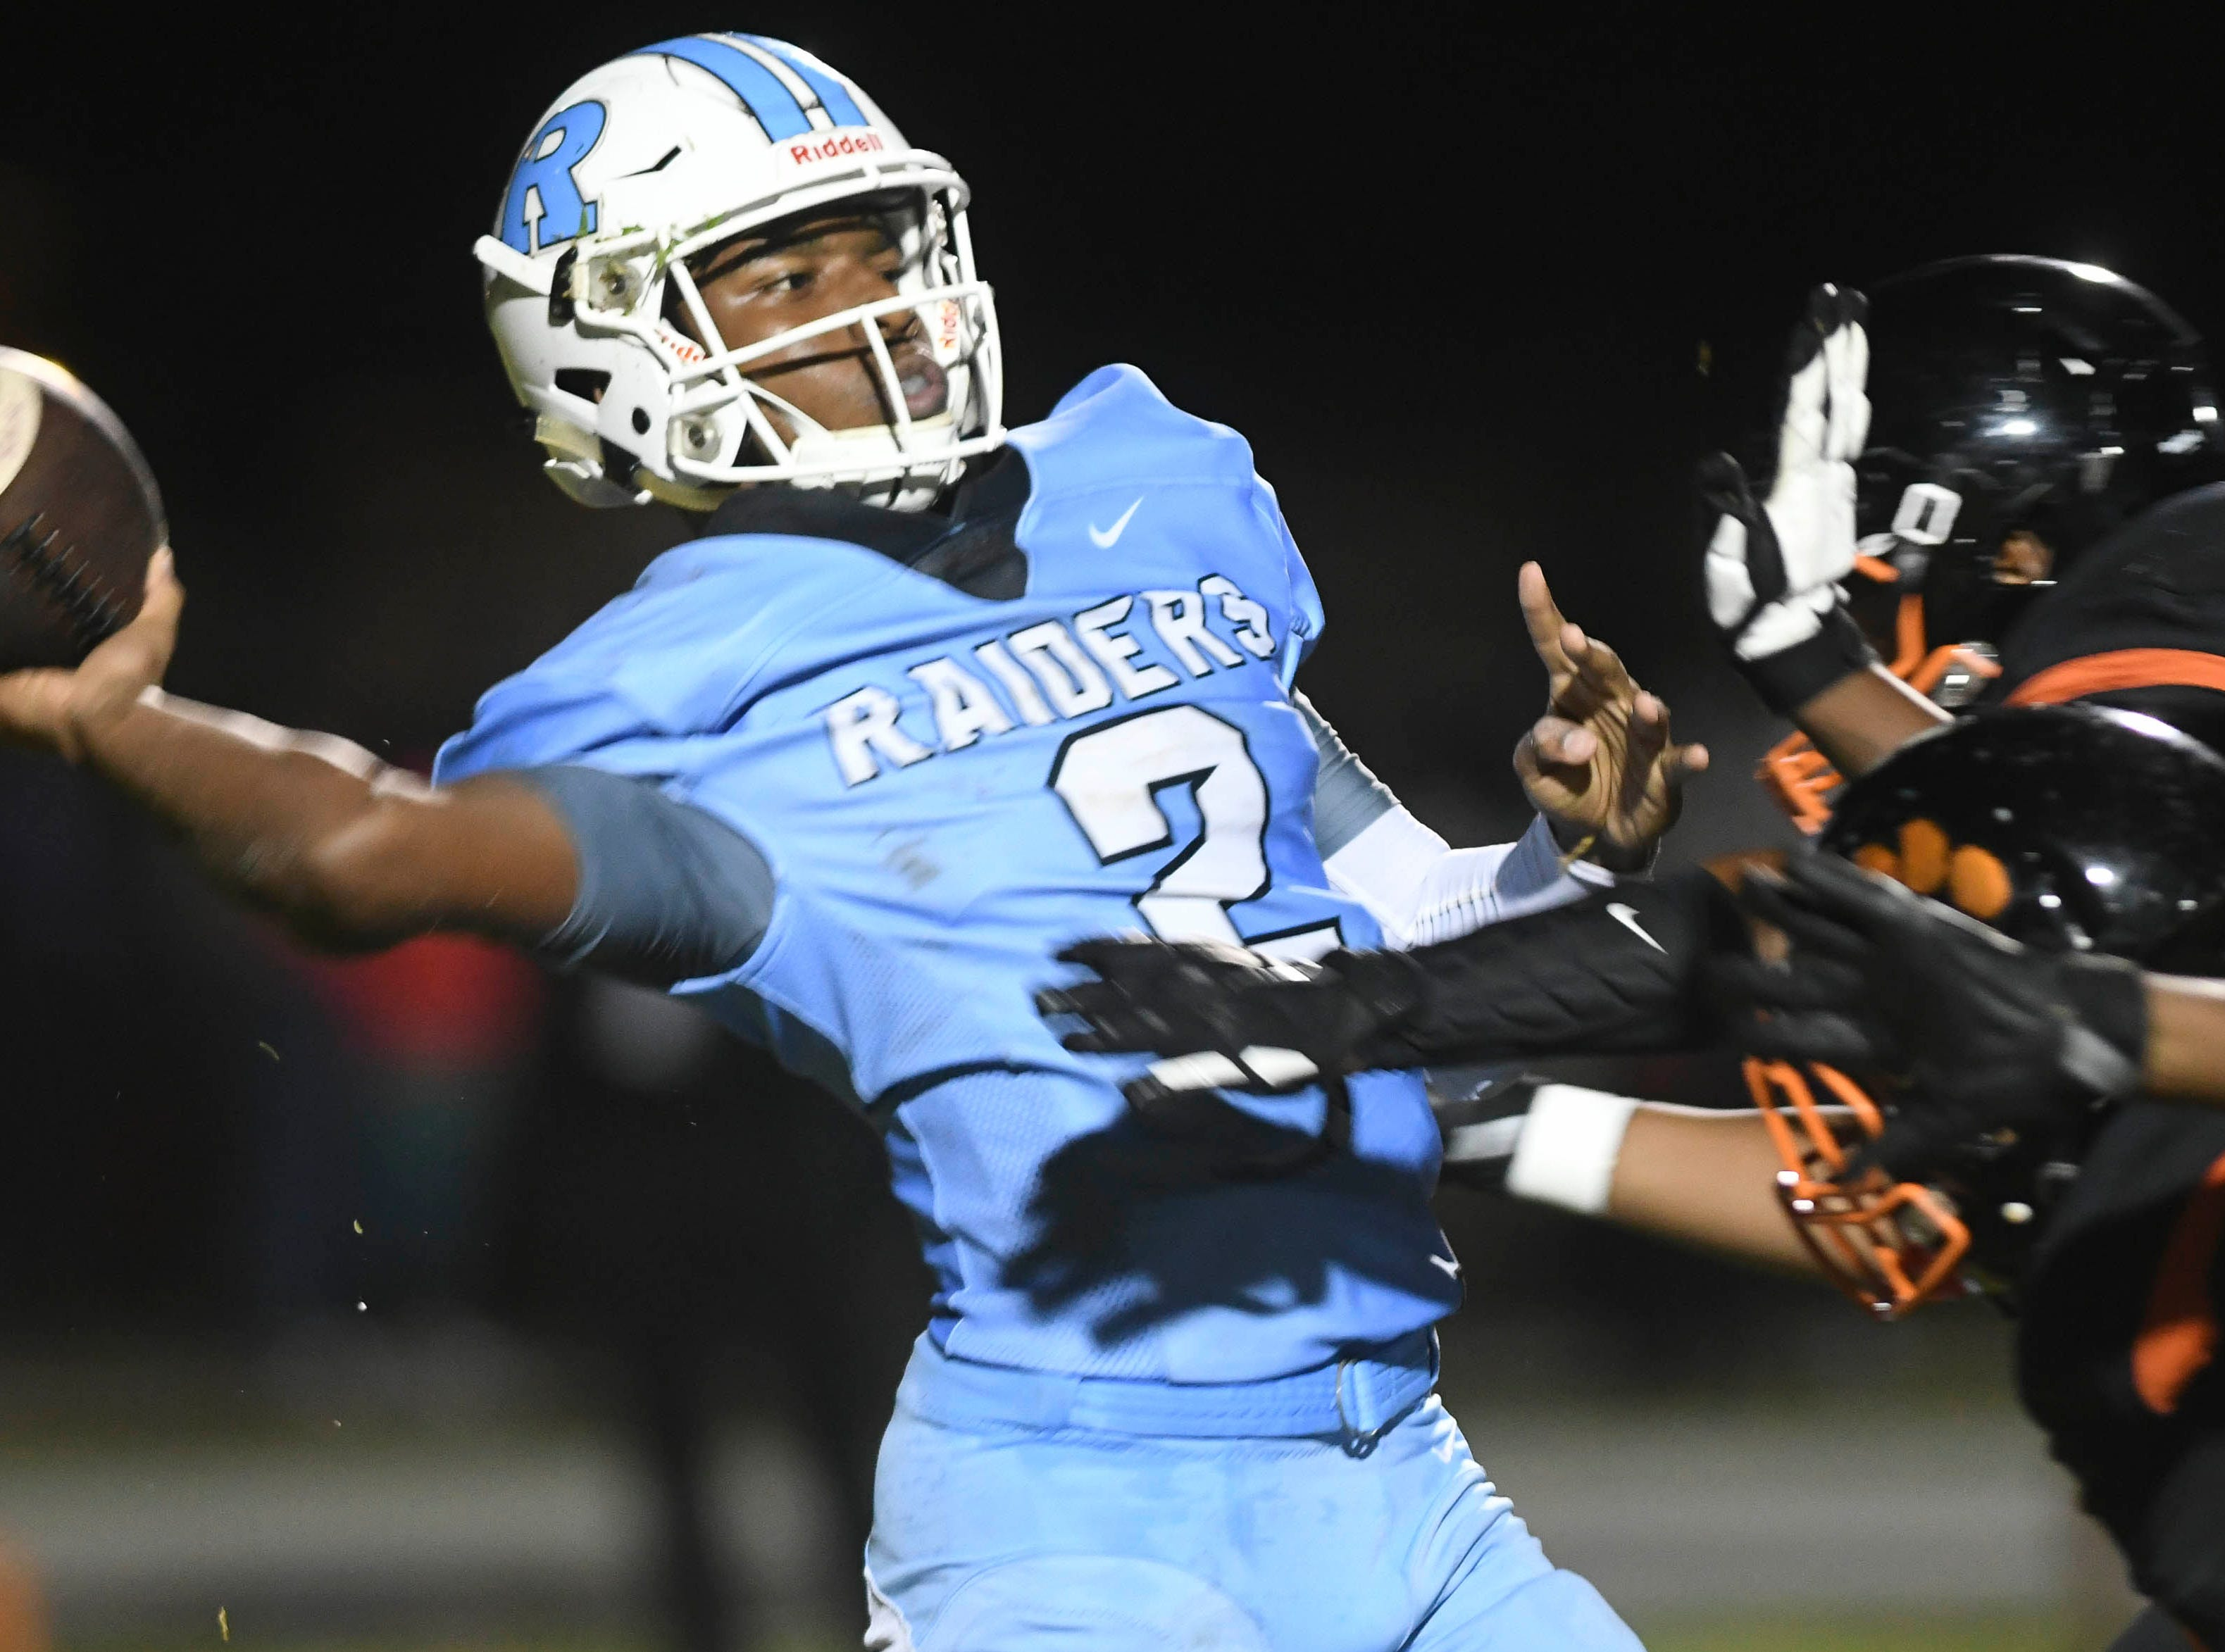 Rockledge QB Elias Allen is harassed by a pair of Cocoa defenders during Friday's game.